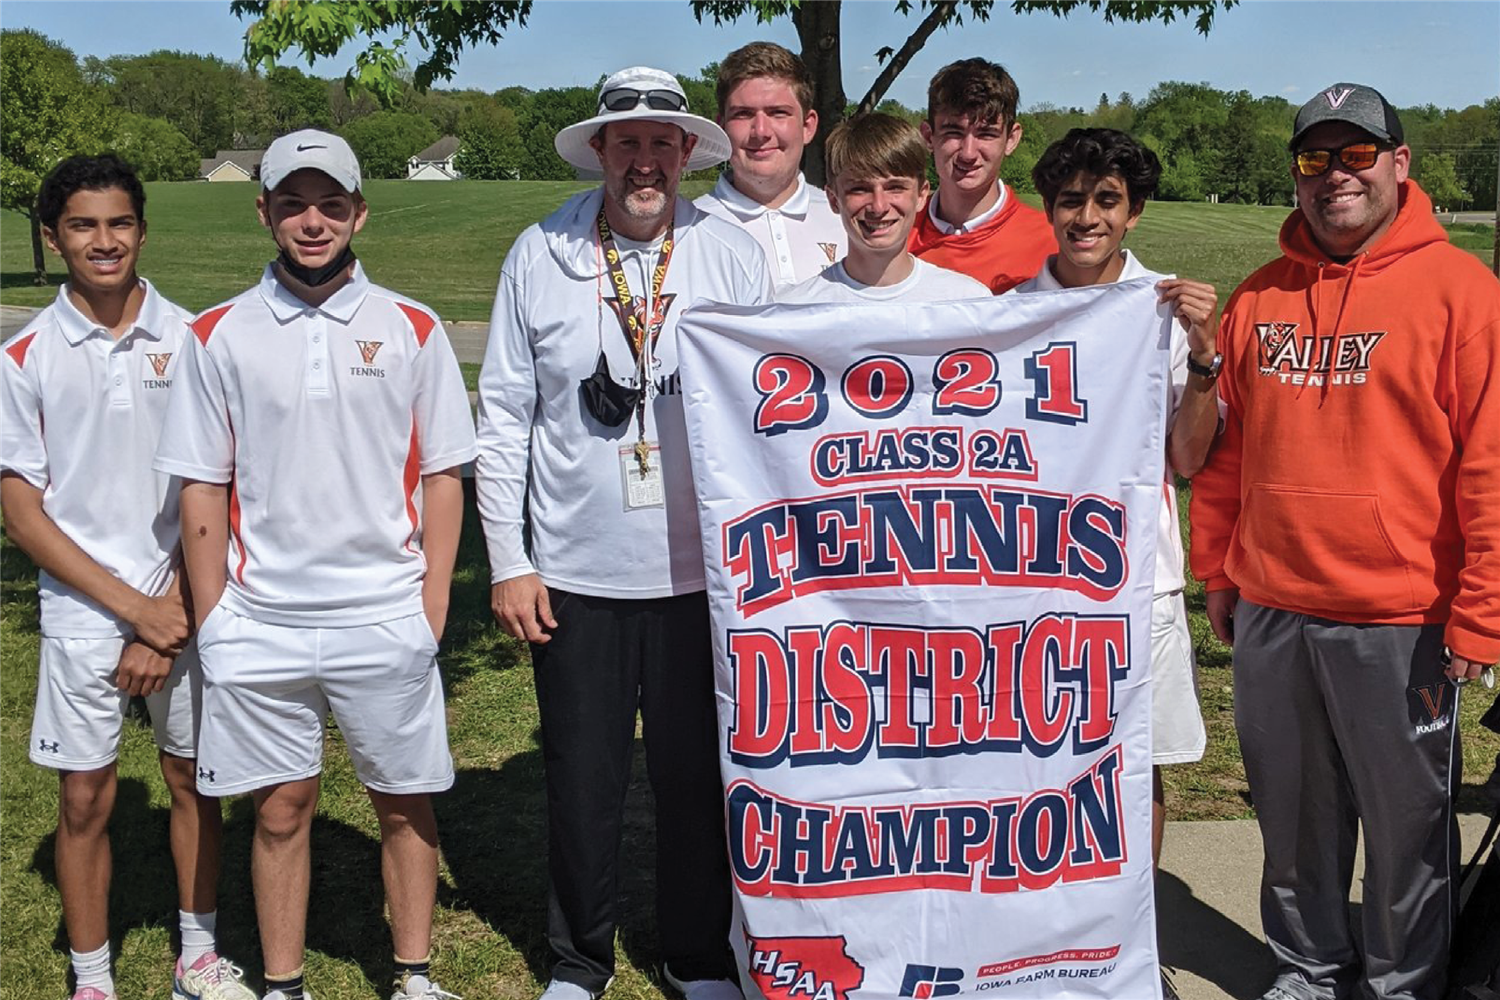 valley boys' tennis district meet champs